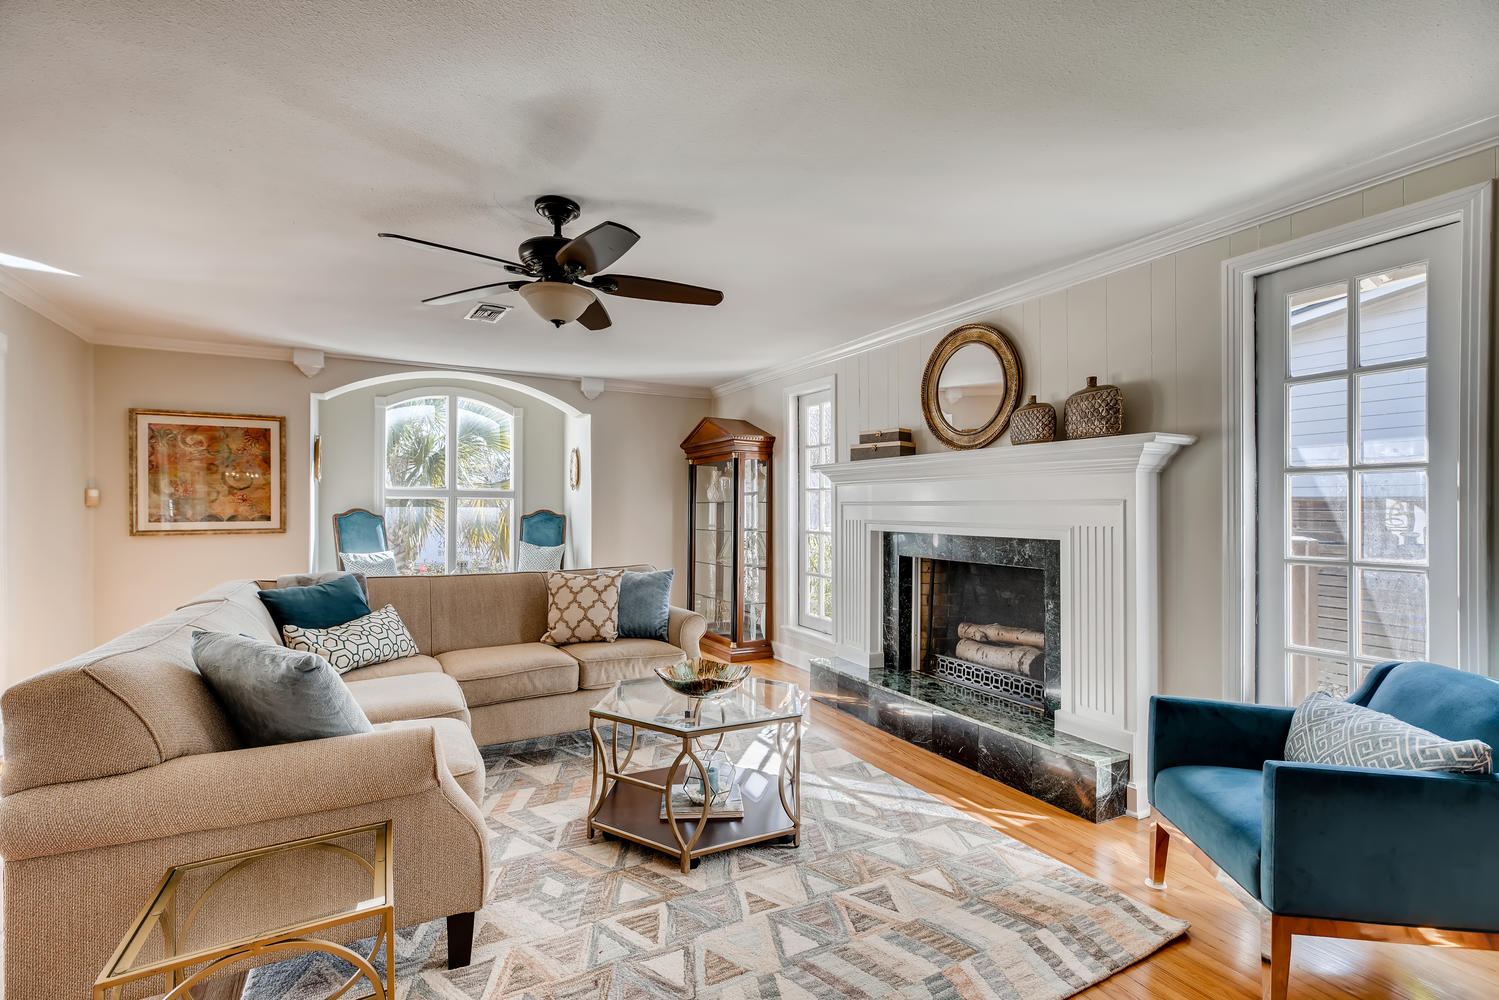 Full home staging in Las Vegas, Nevada, featuring a living room